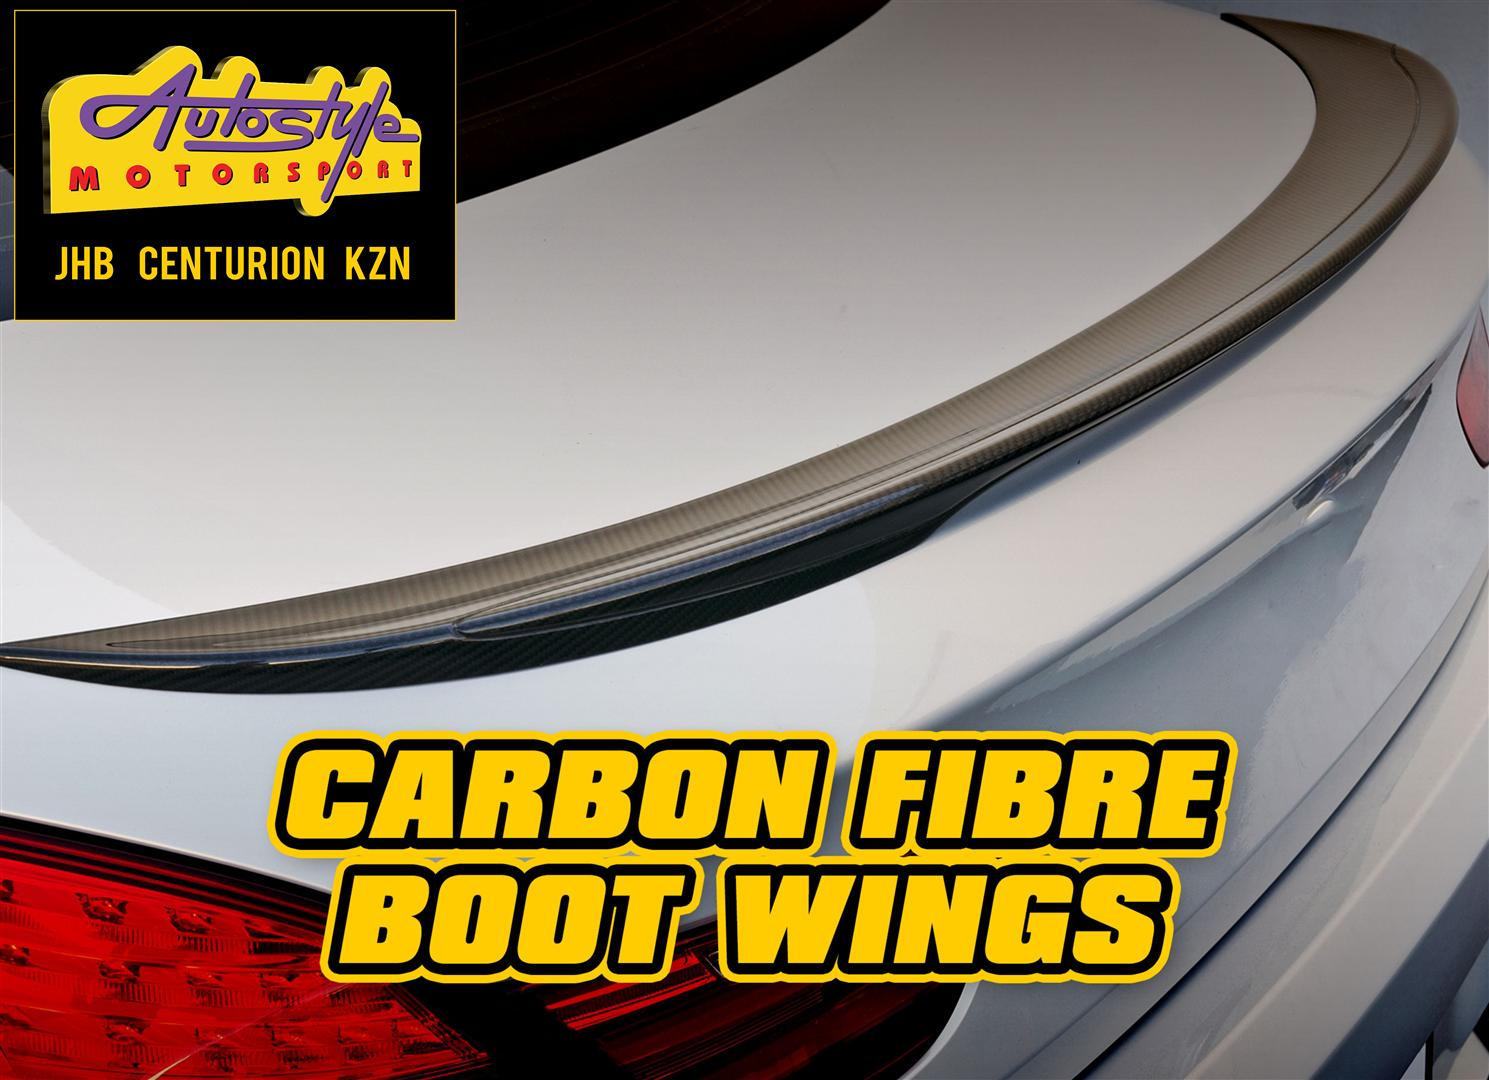 Carbon Fibre bootwings and bootspoilers